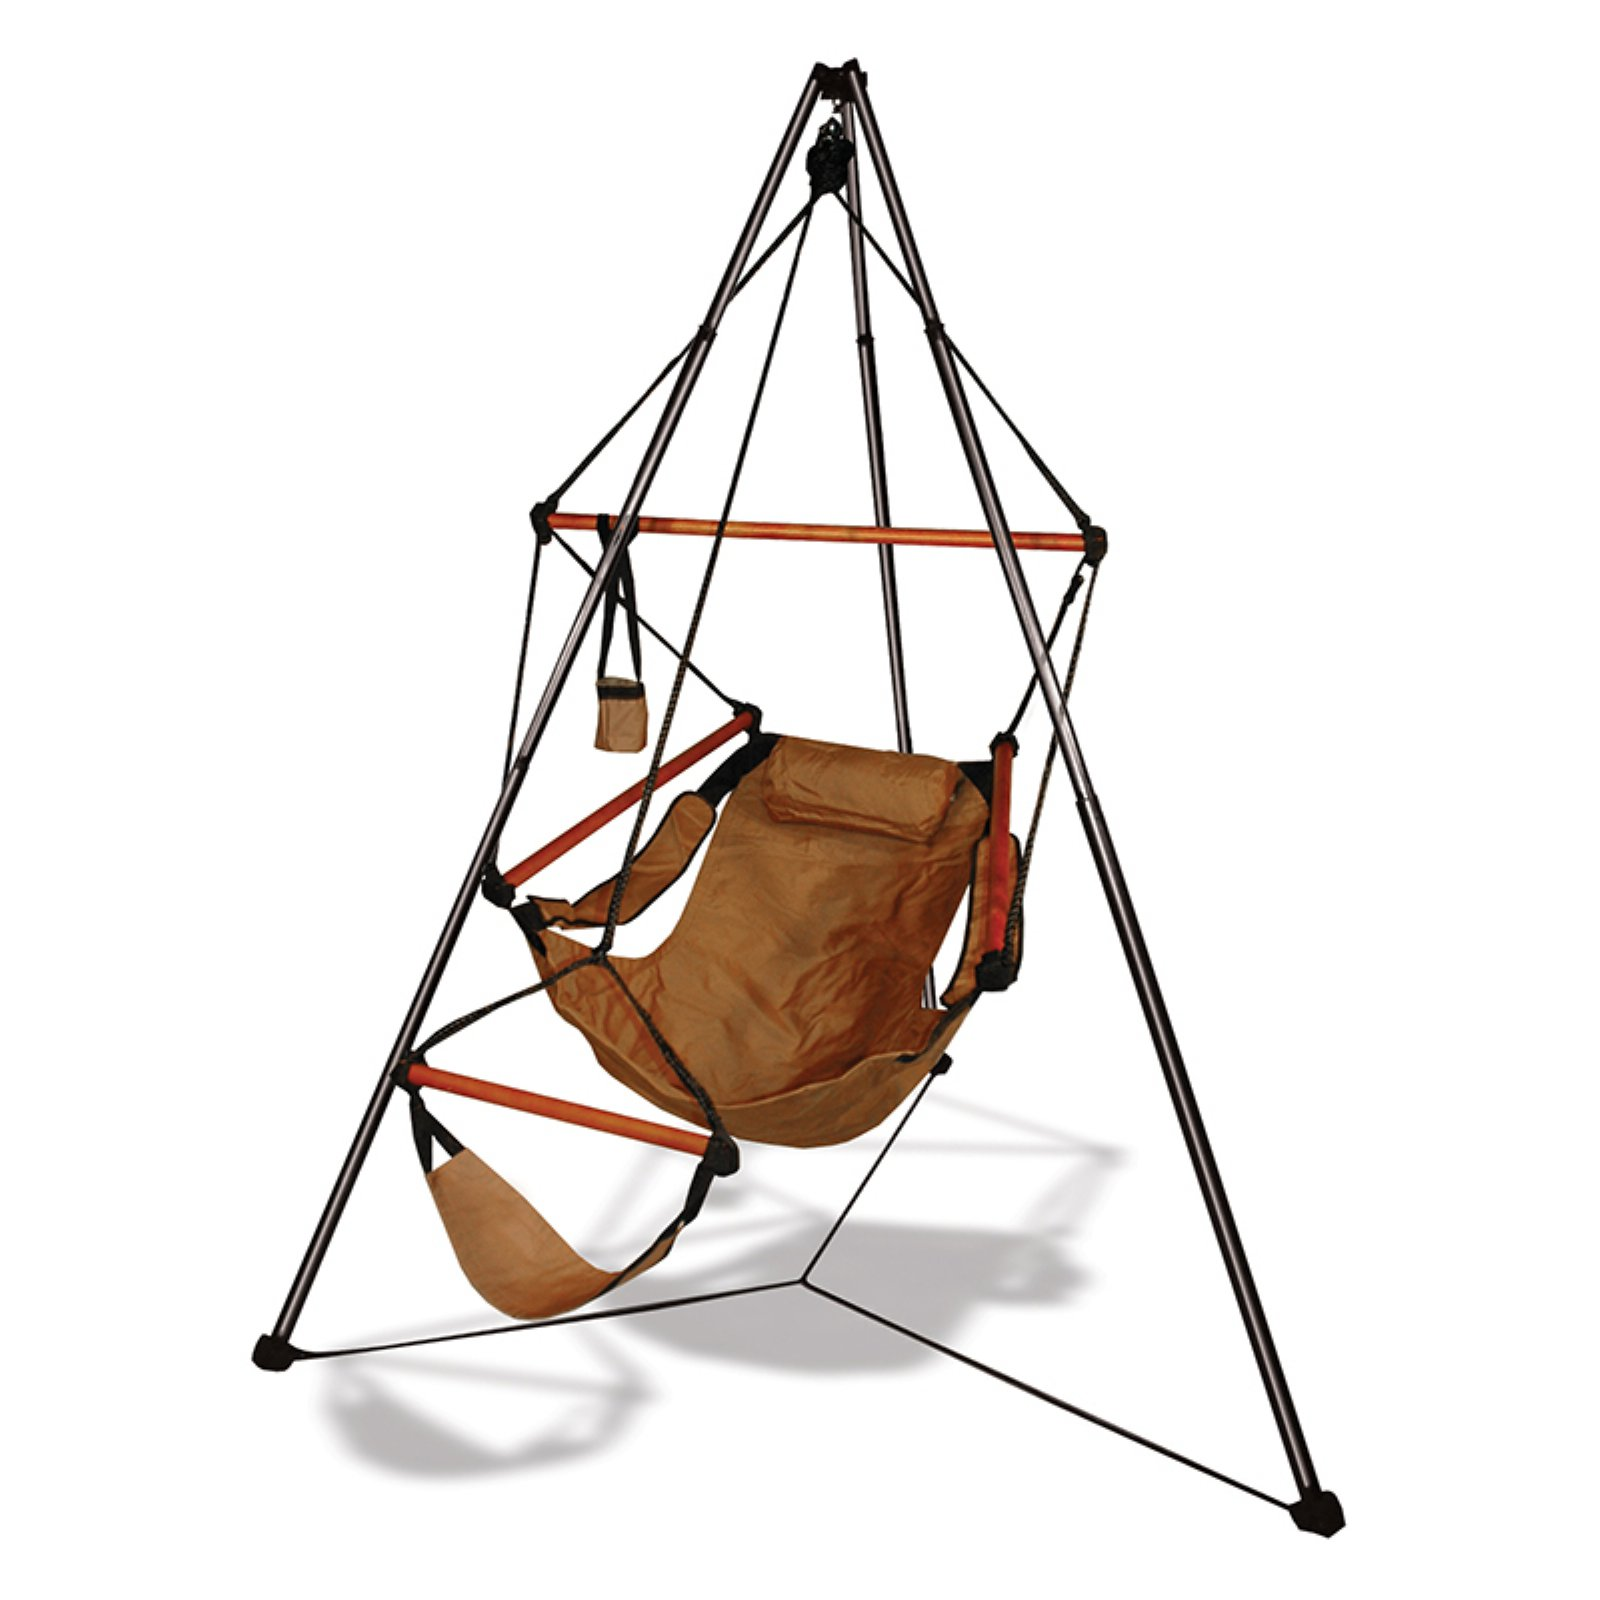 Hammaka Tripod Stand With Hanging Air Chair Combo